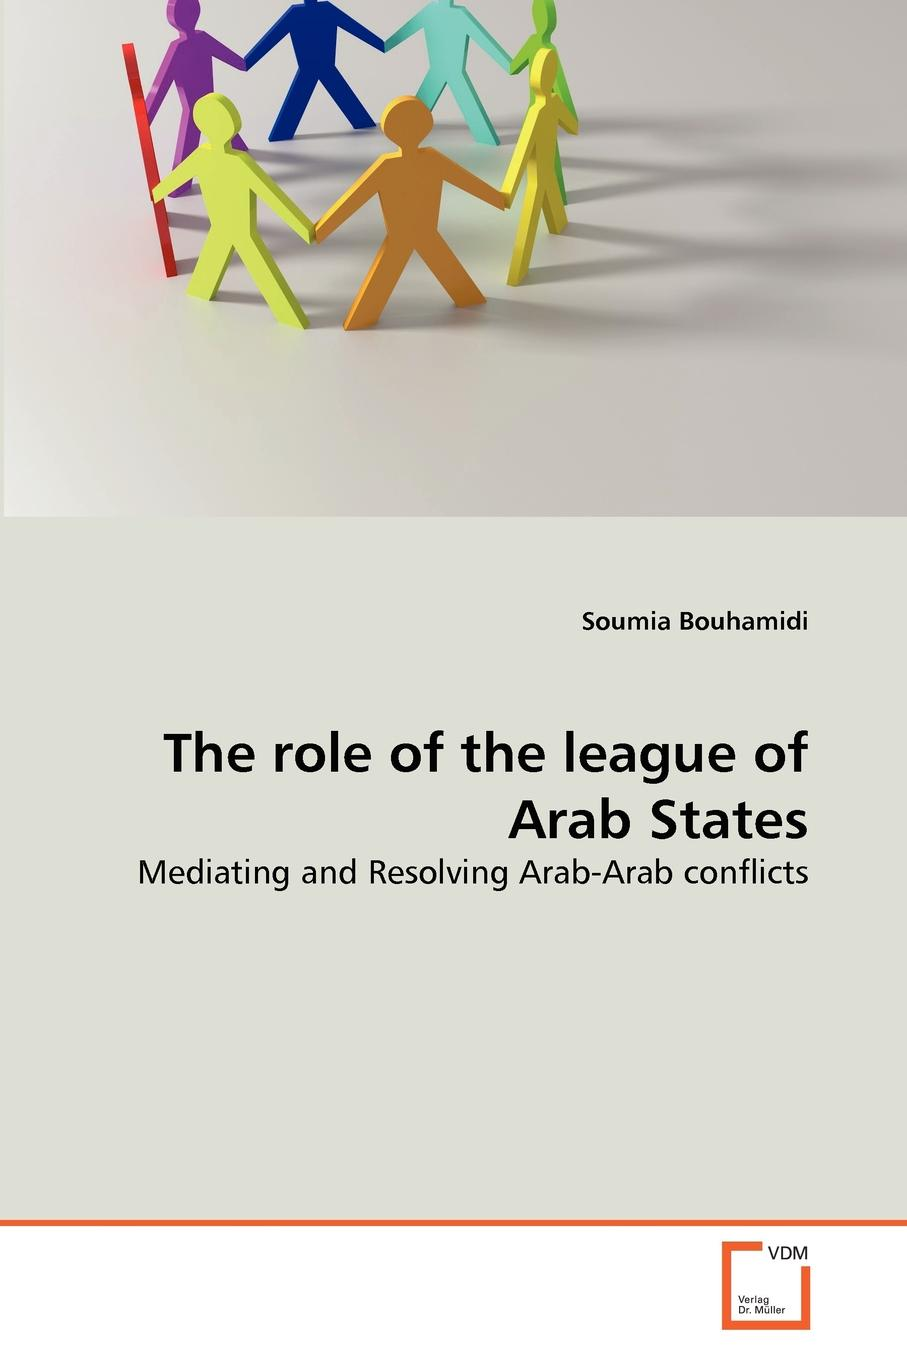 Soumia Bouhamidi The role of the league of Arab States vijay mahajan the arab world unbound tapping into the power of 350 million consumers